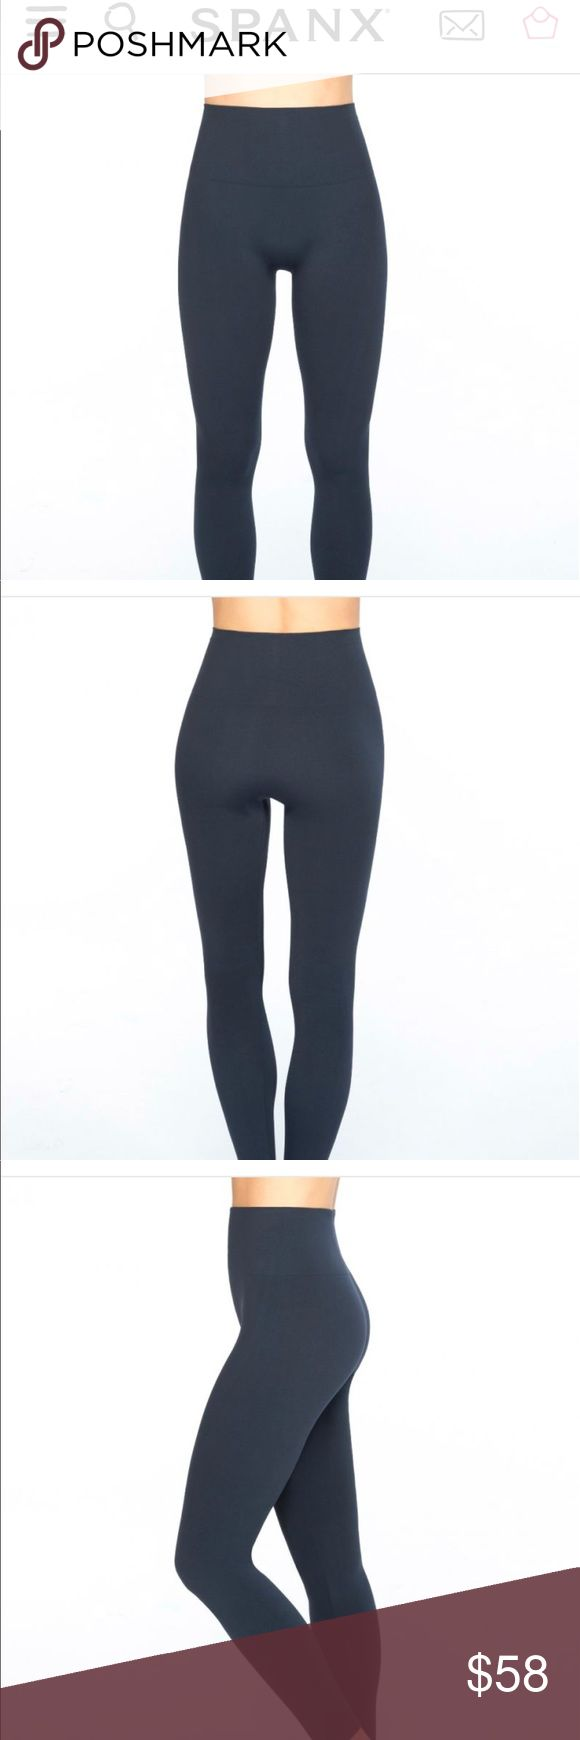 New Look at me now Navy Spanx Leggings Brand new, never worn and from a smoke free home!  Size small. SPANX Pants Leggings